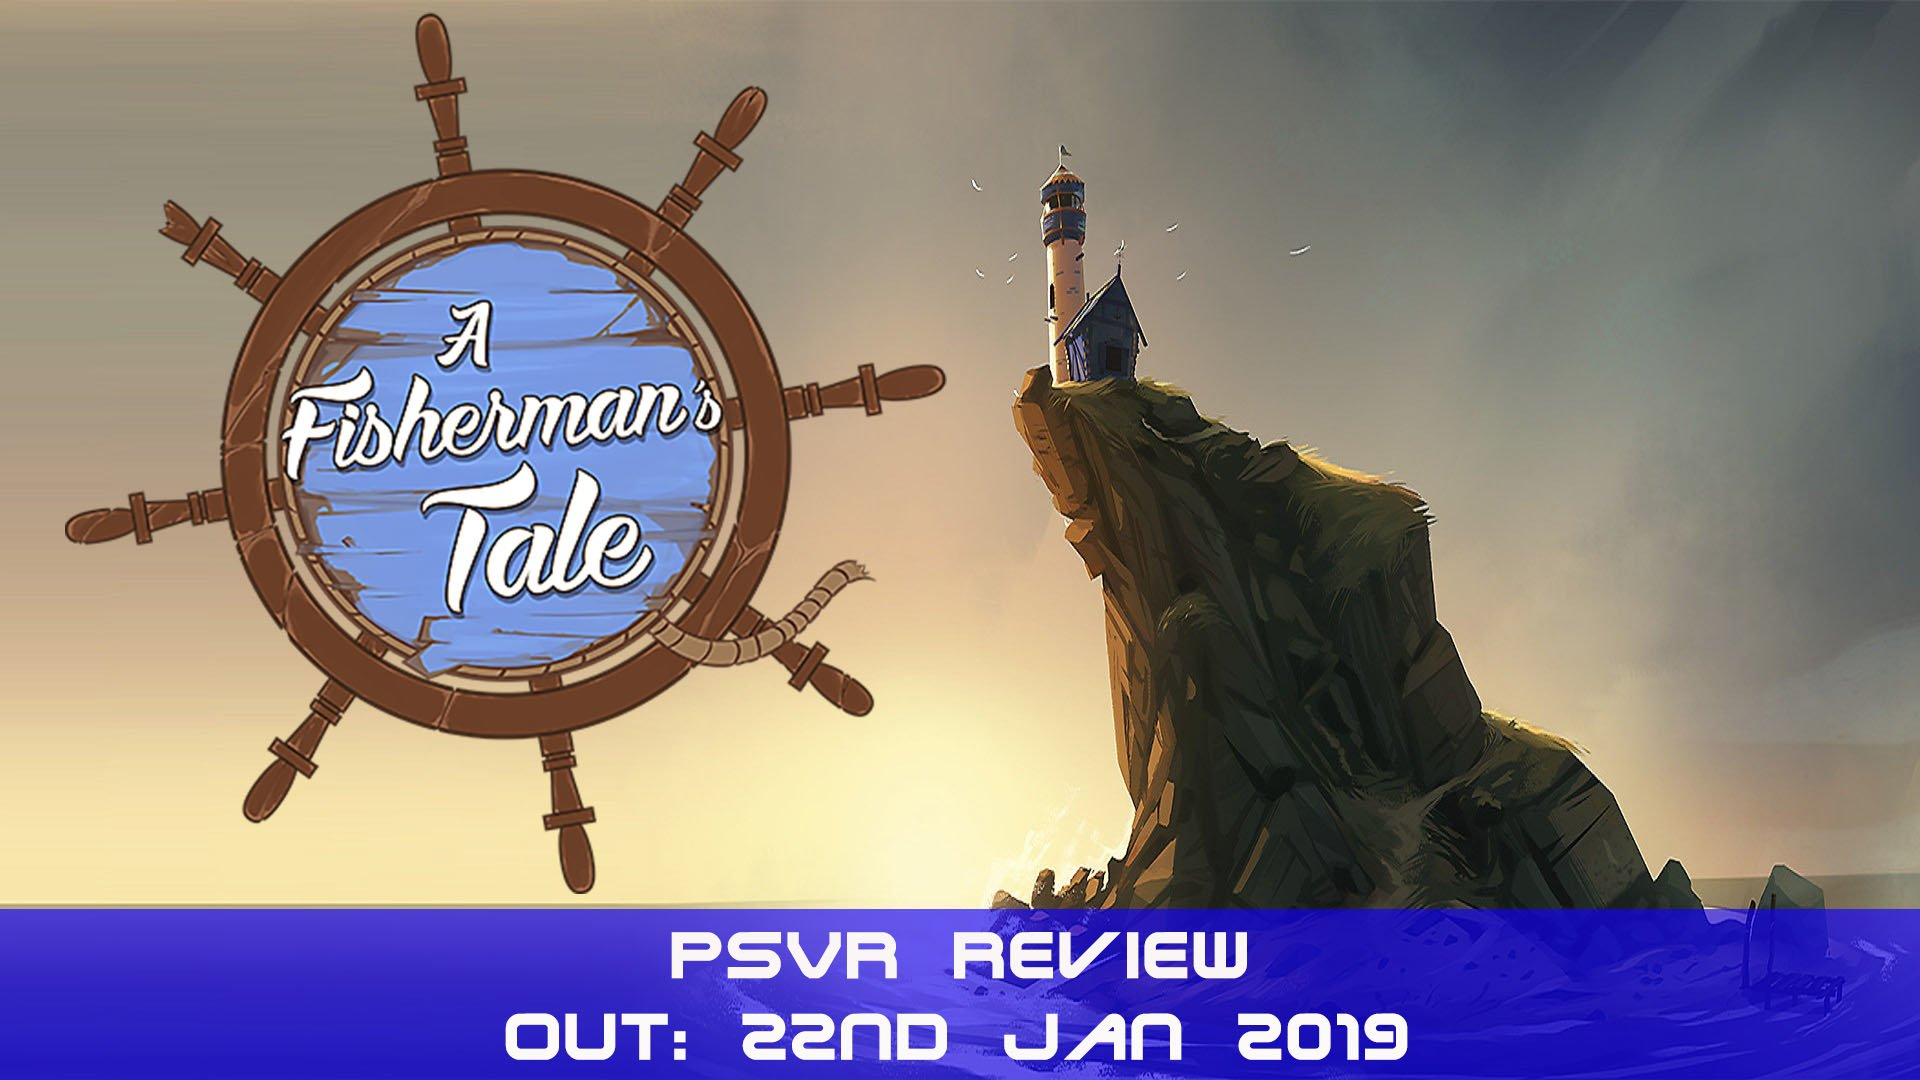 A Fisherman's Tale (PSVR) Review